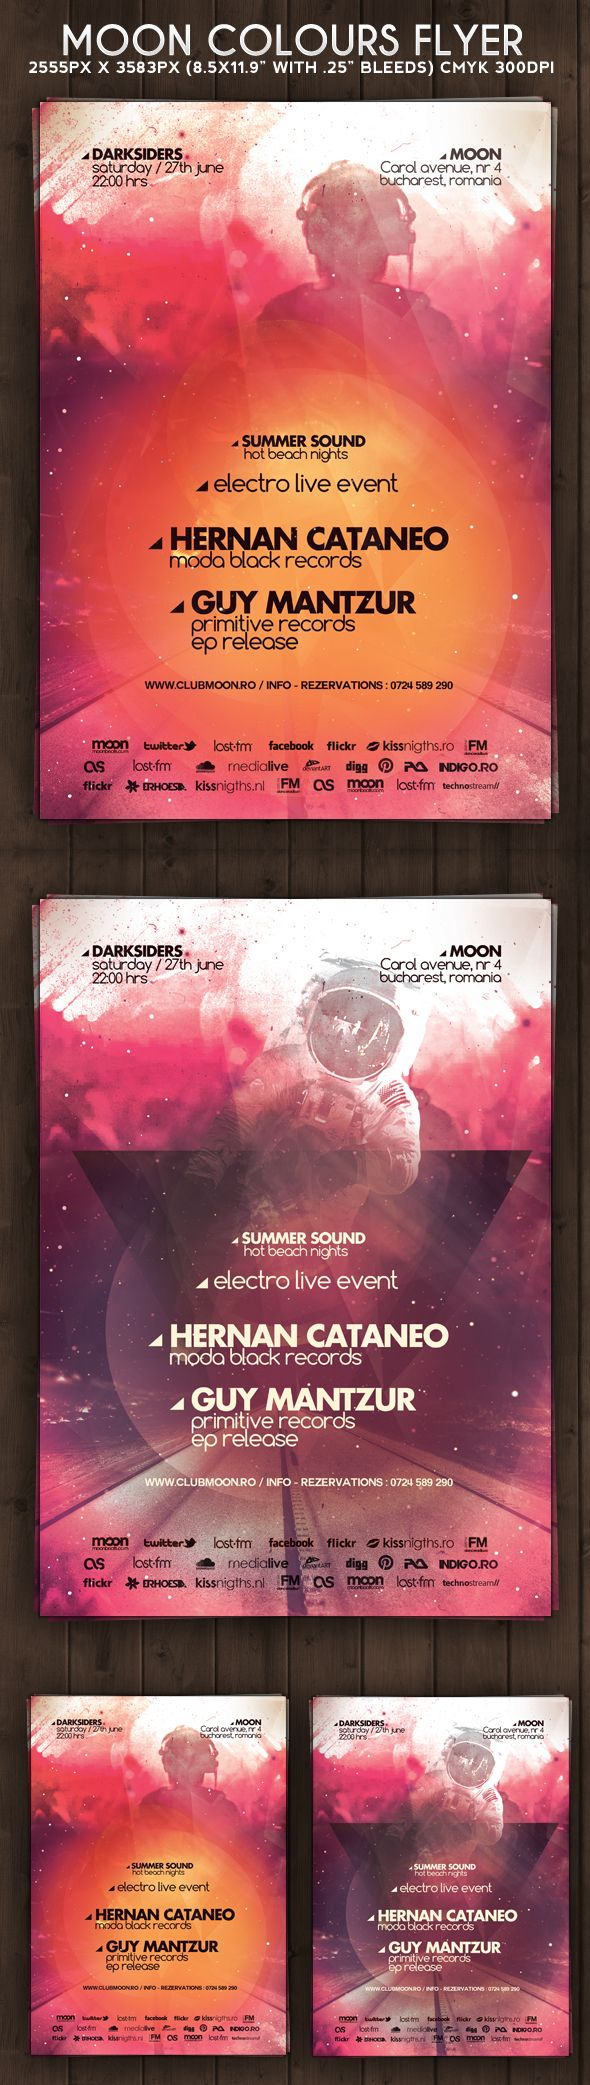 8 5x11 poster design - Moon Colours Flyer Poster By Iulian Balinisteanu Via Behance